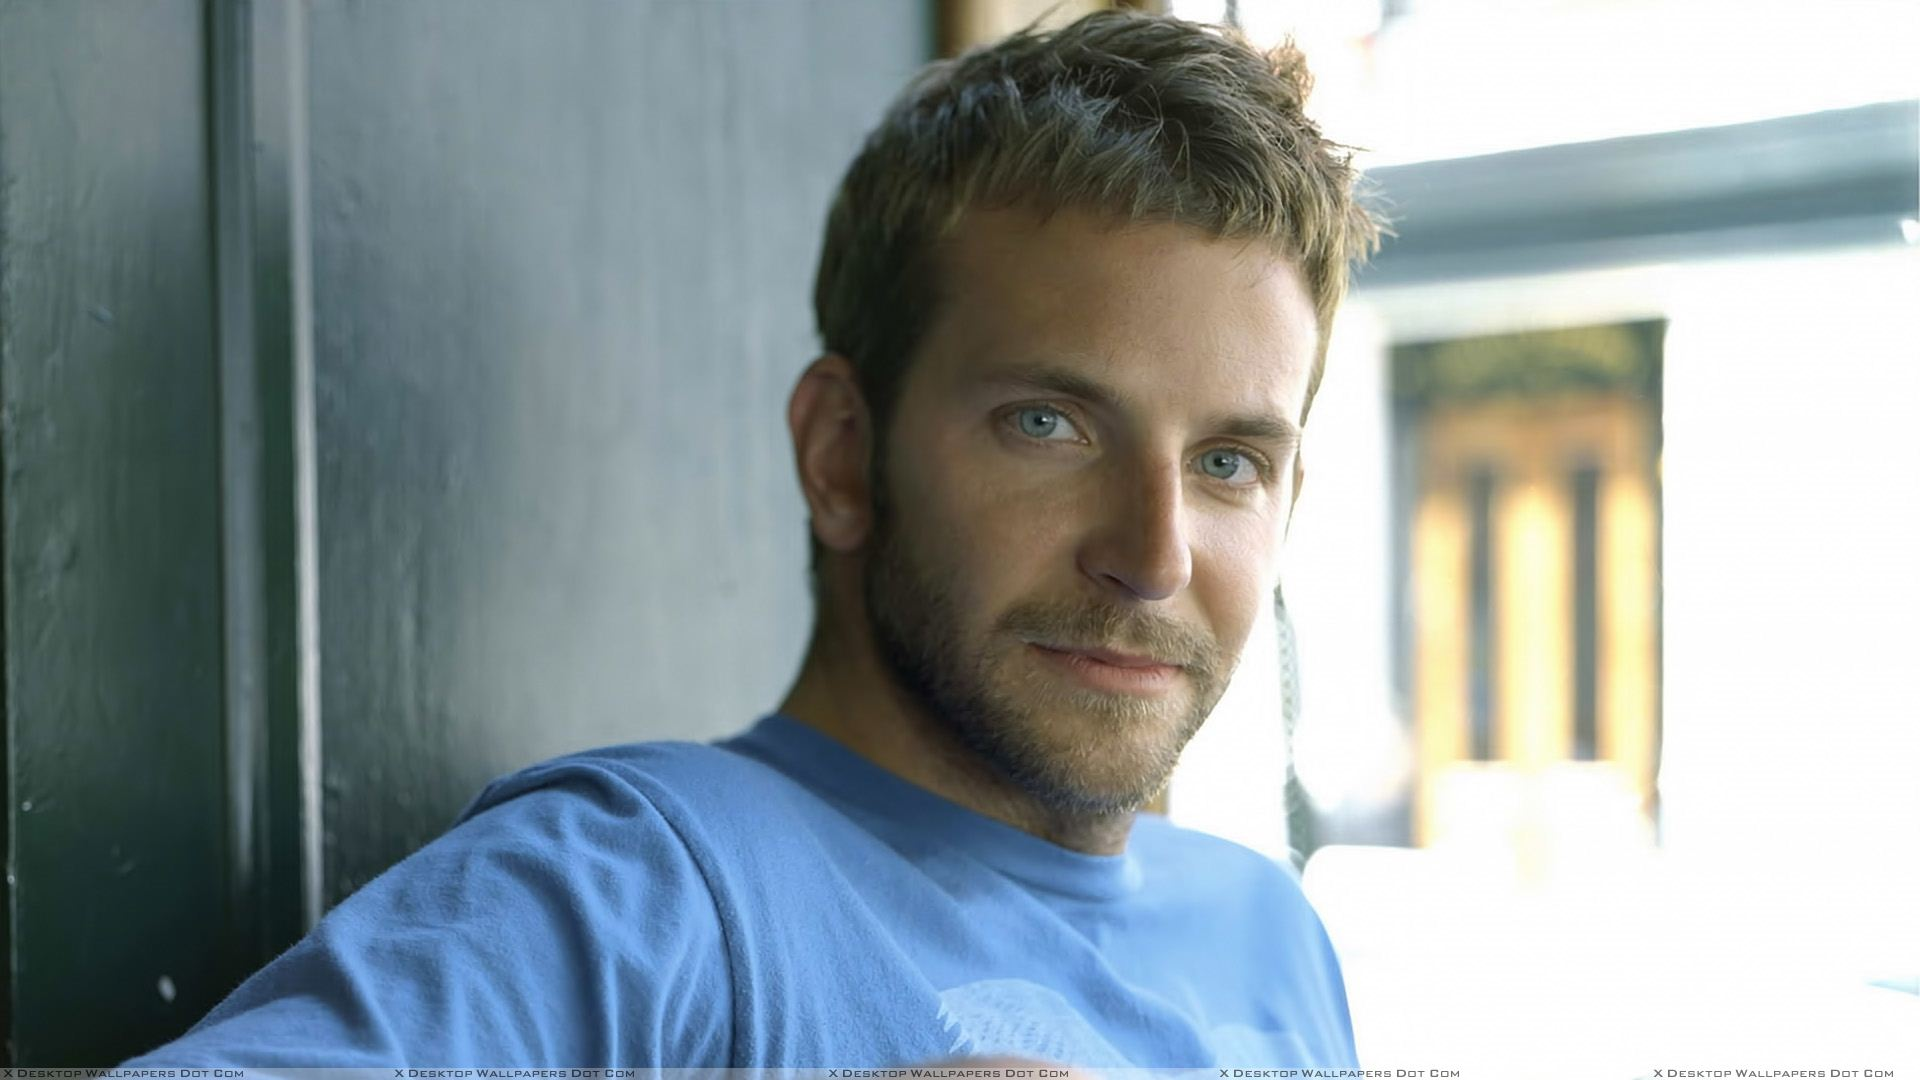 Bradley Cooper In Blue T Shirt Looking At Camera Wallpaper 1920x1080